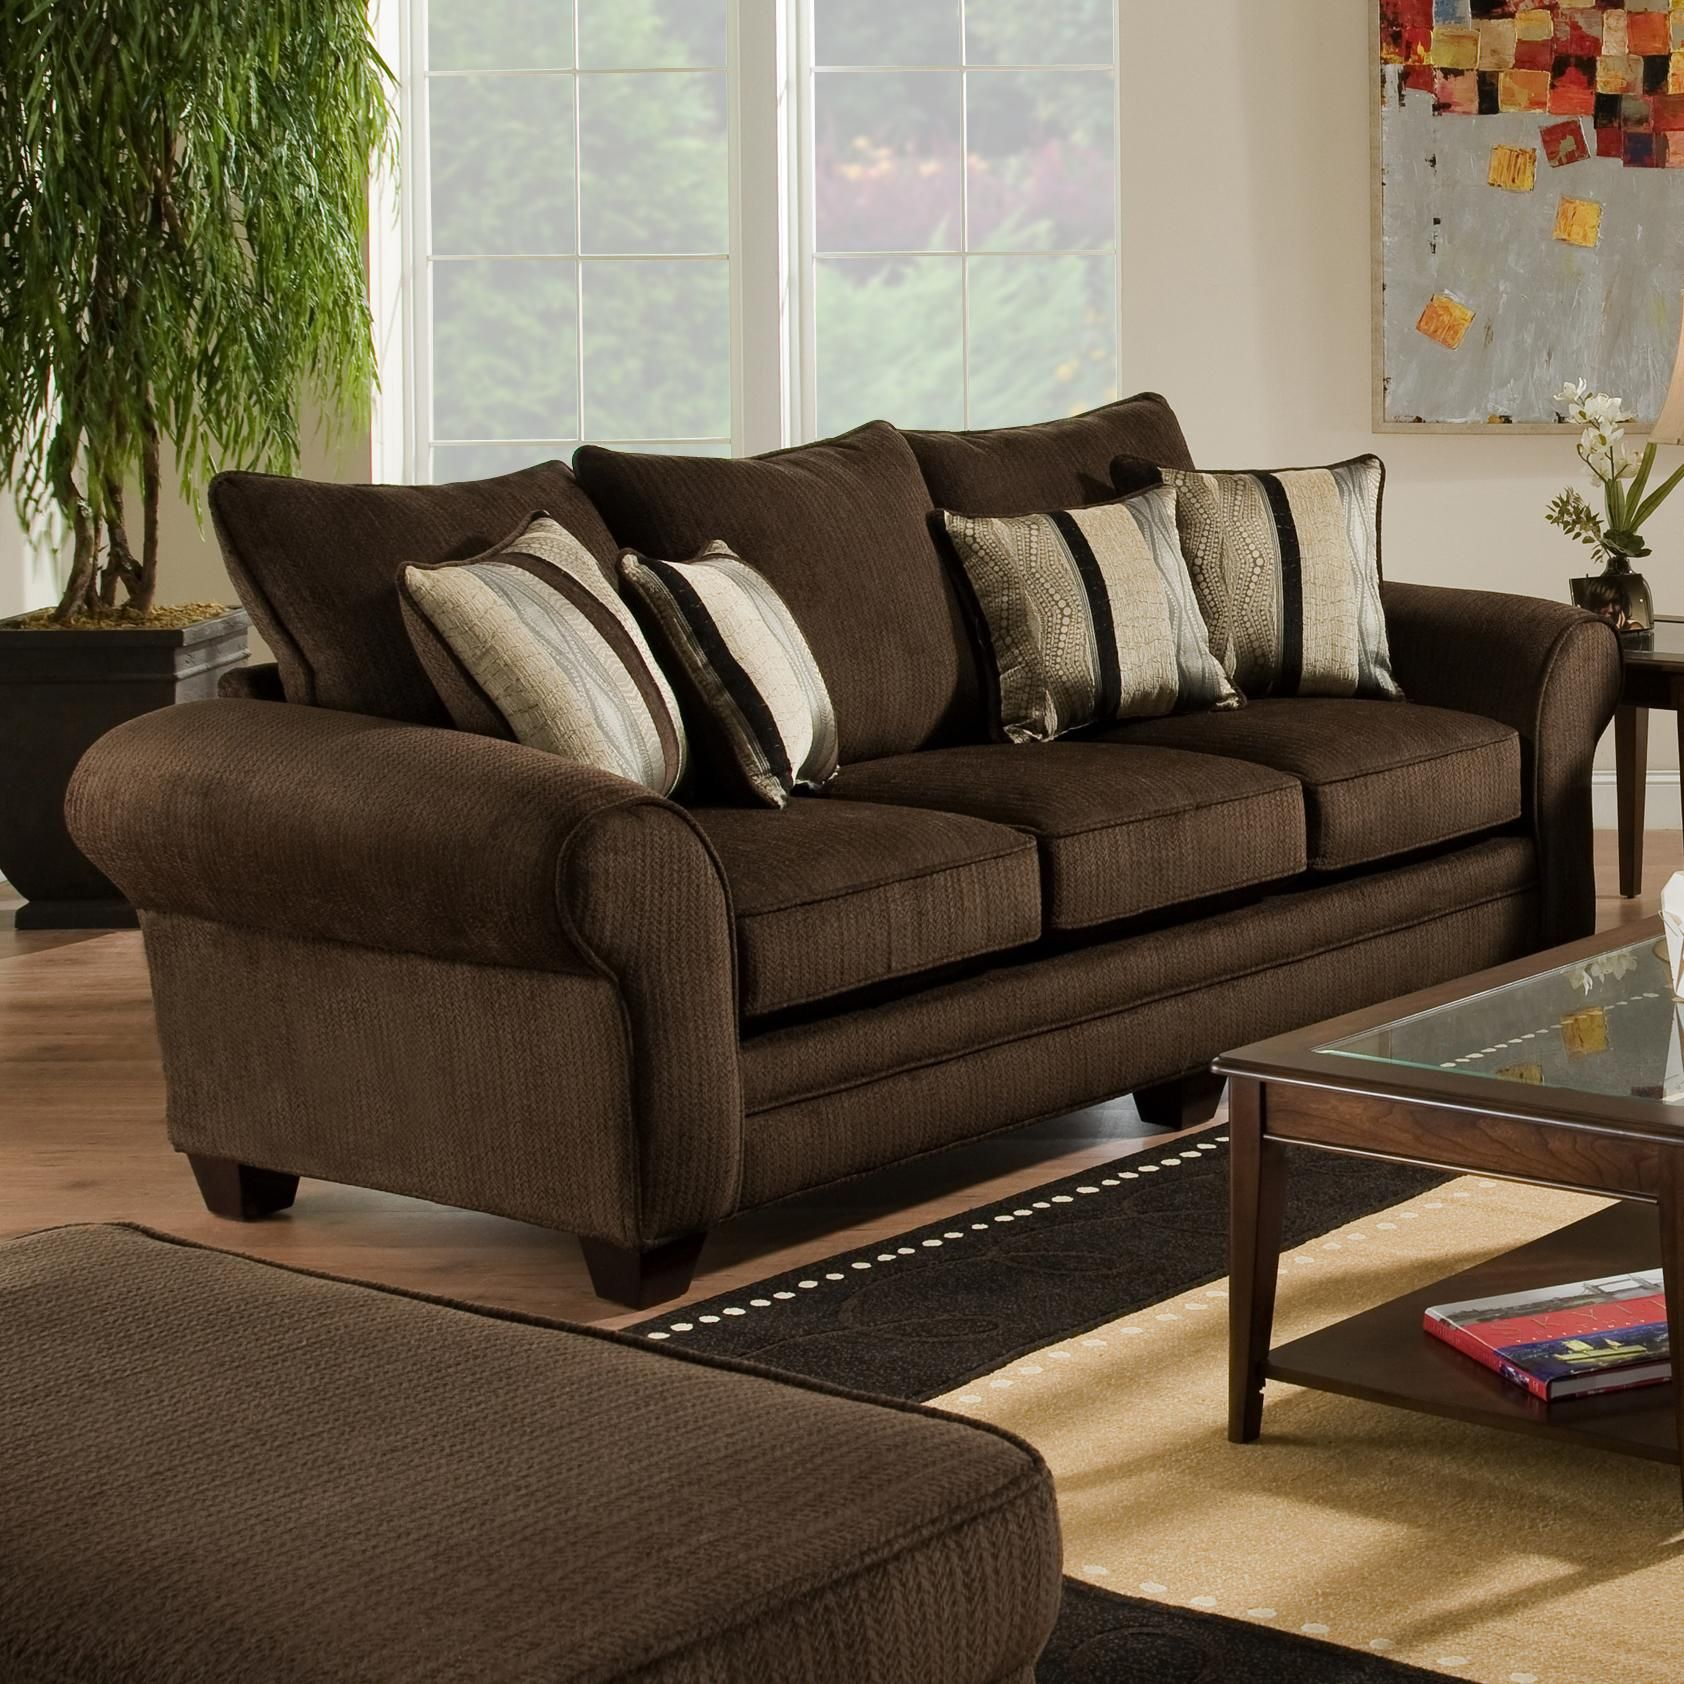 3700 Upholstered Stationary Sofa by American Furniture